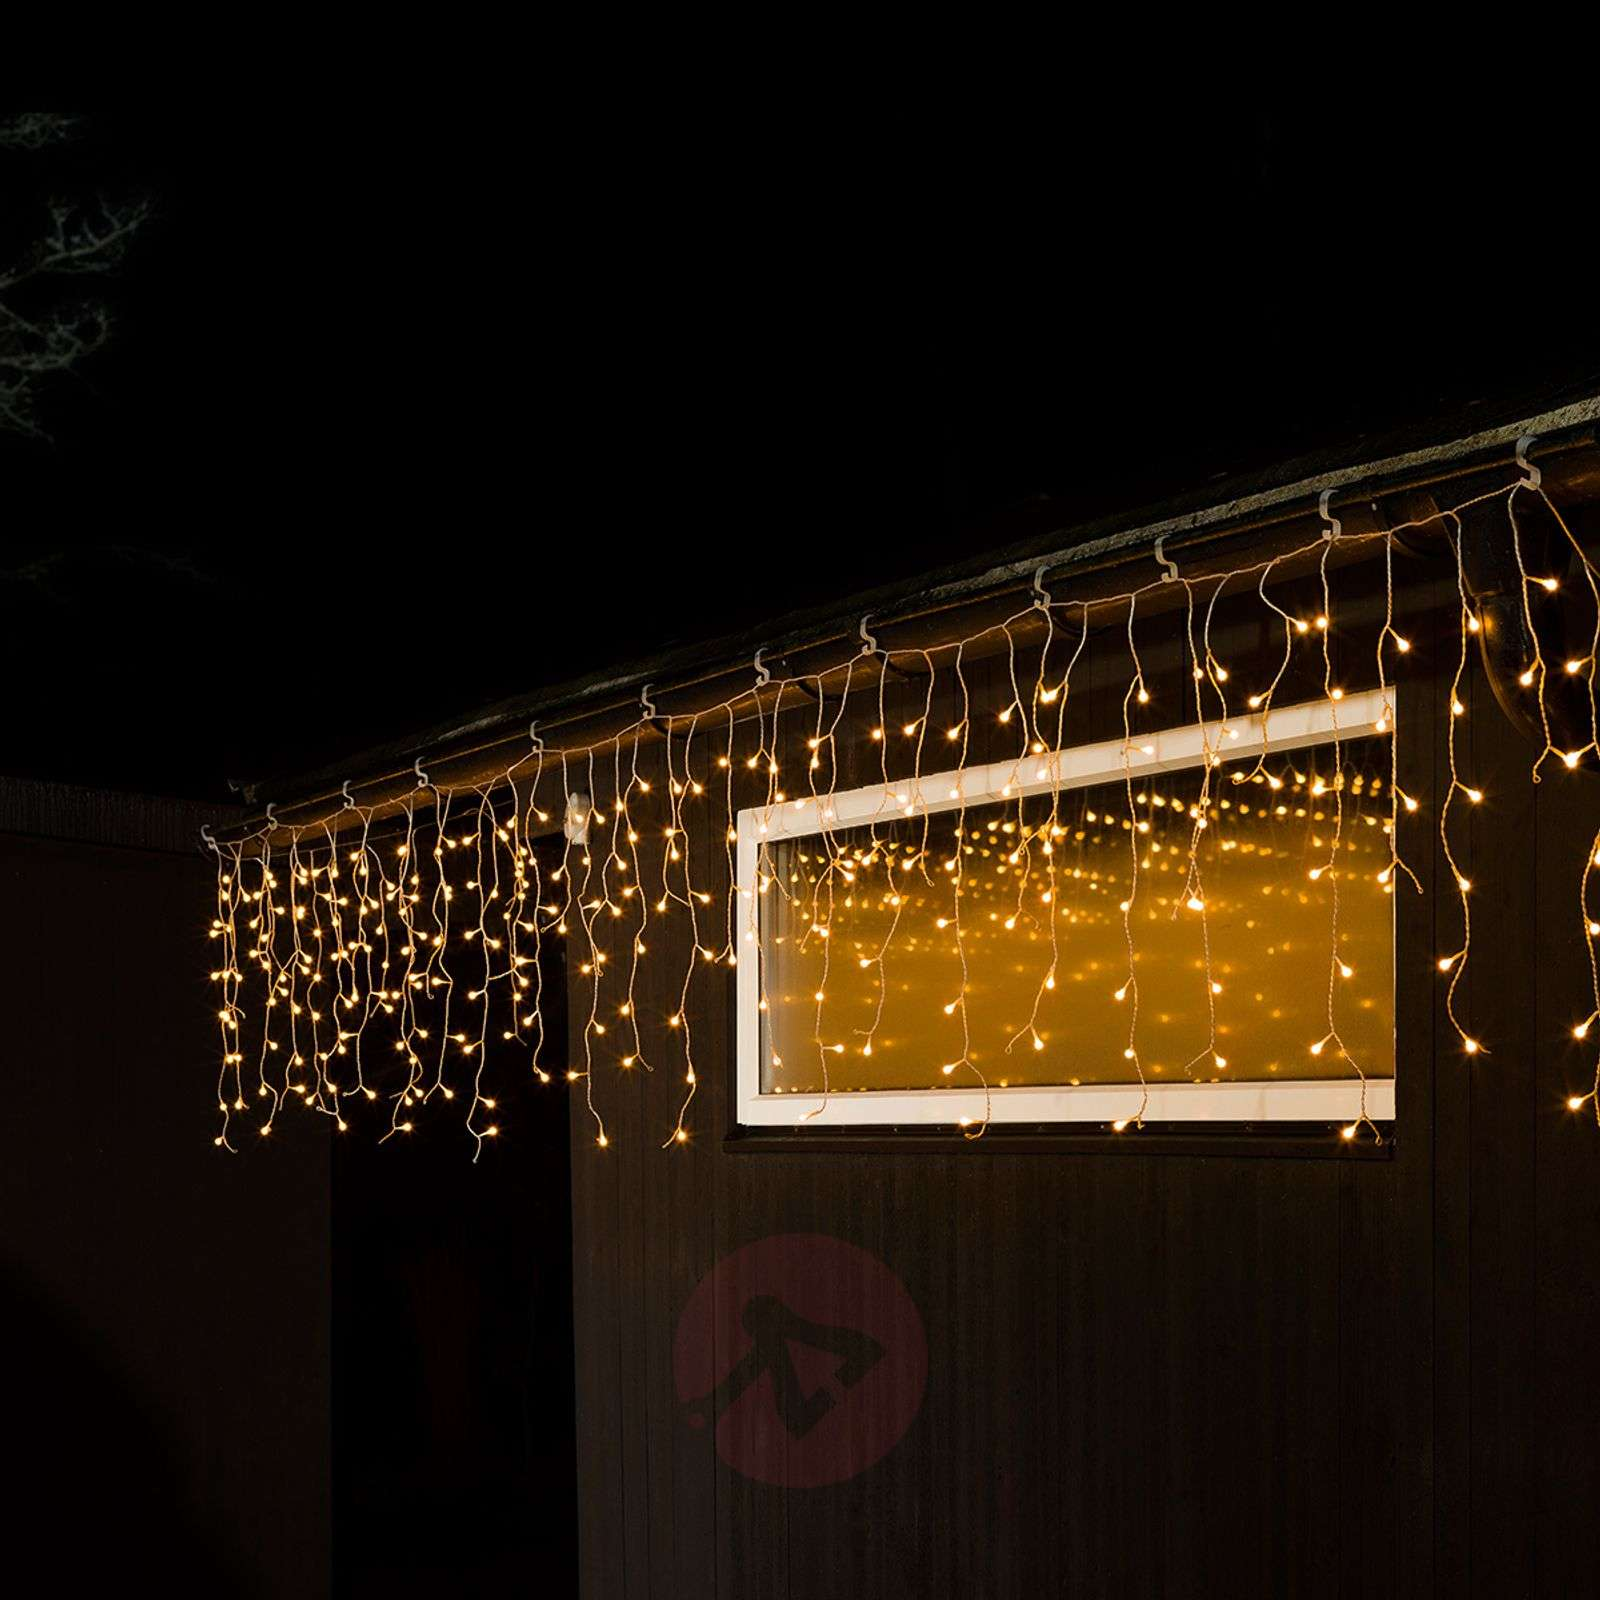 Acquista tenda luminosa a led da esterni luci lampade